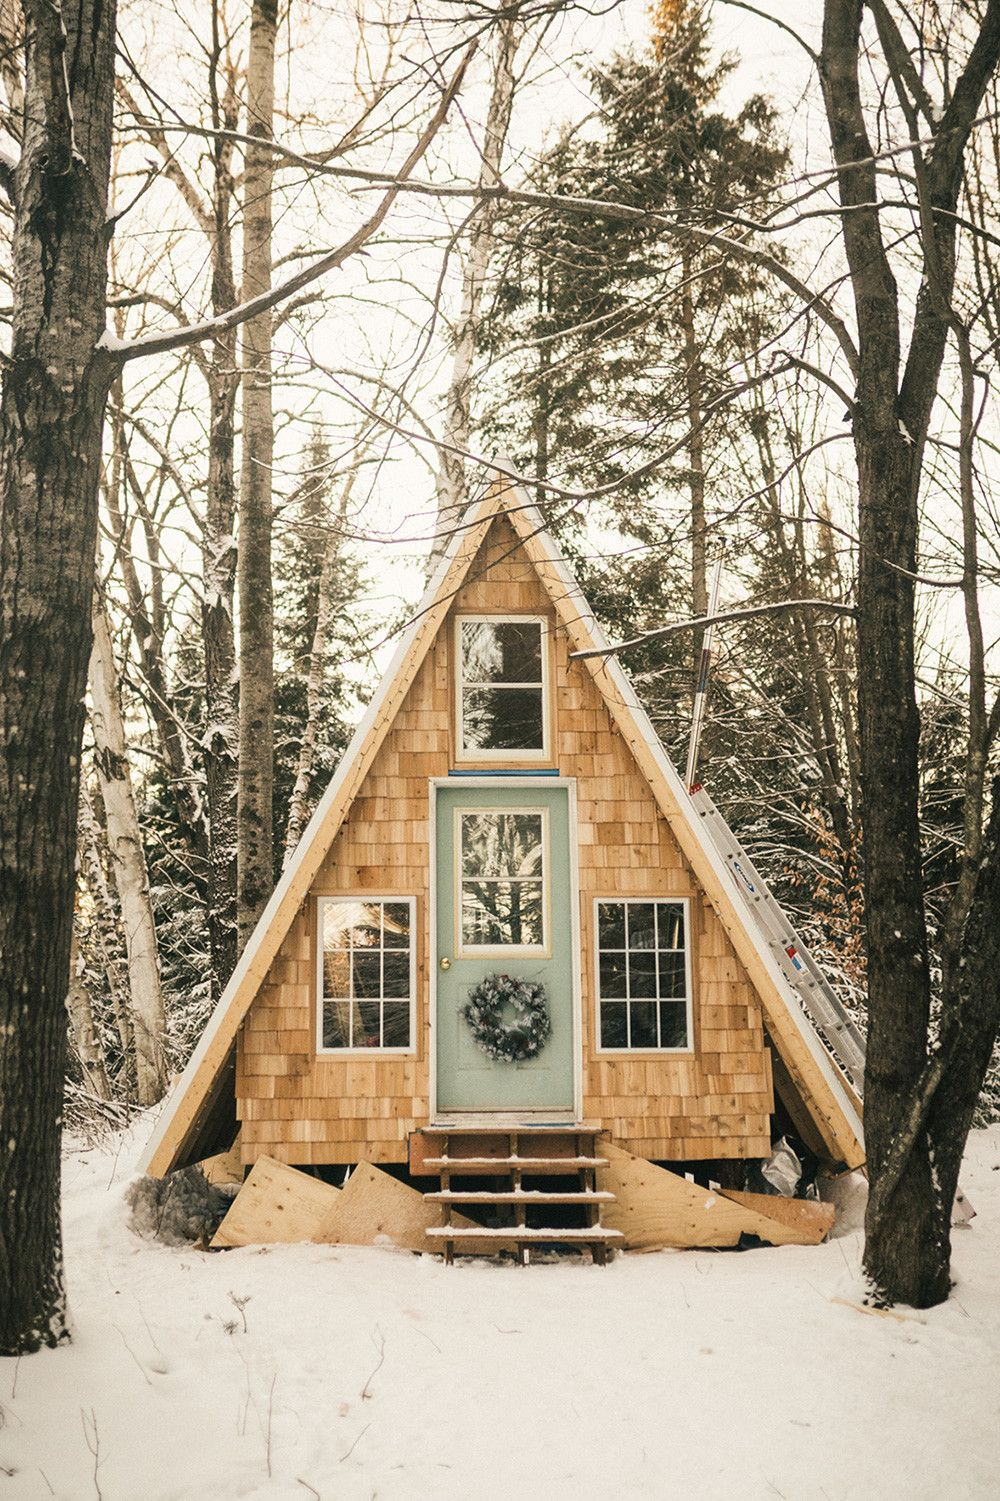 All You Need to Know to Build an A-Frame Cabin for $8k